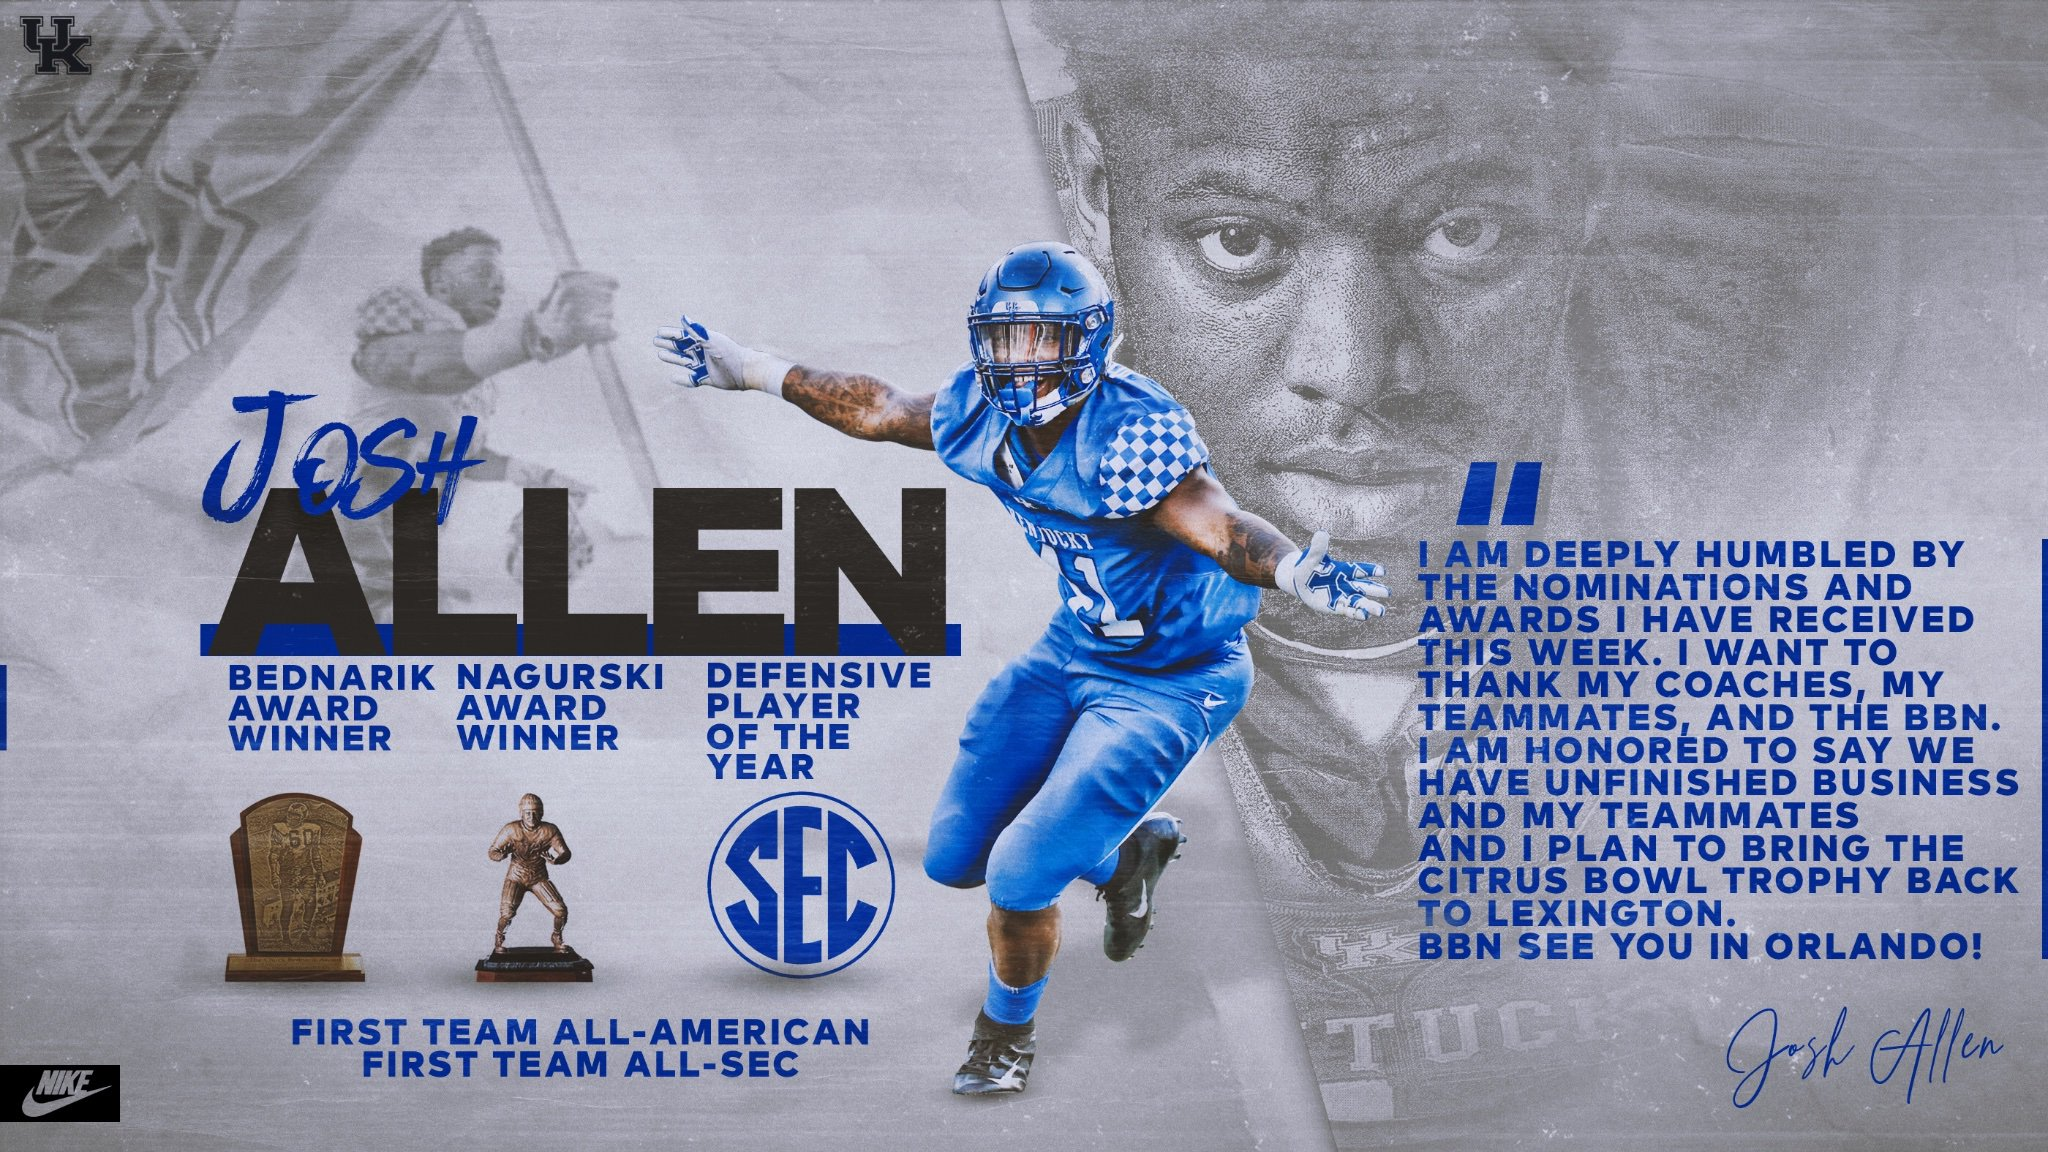 josh allen announcement_1544216018817.jpg.jpg